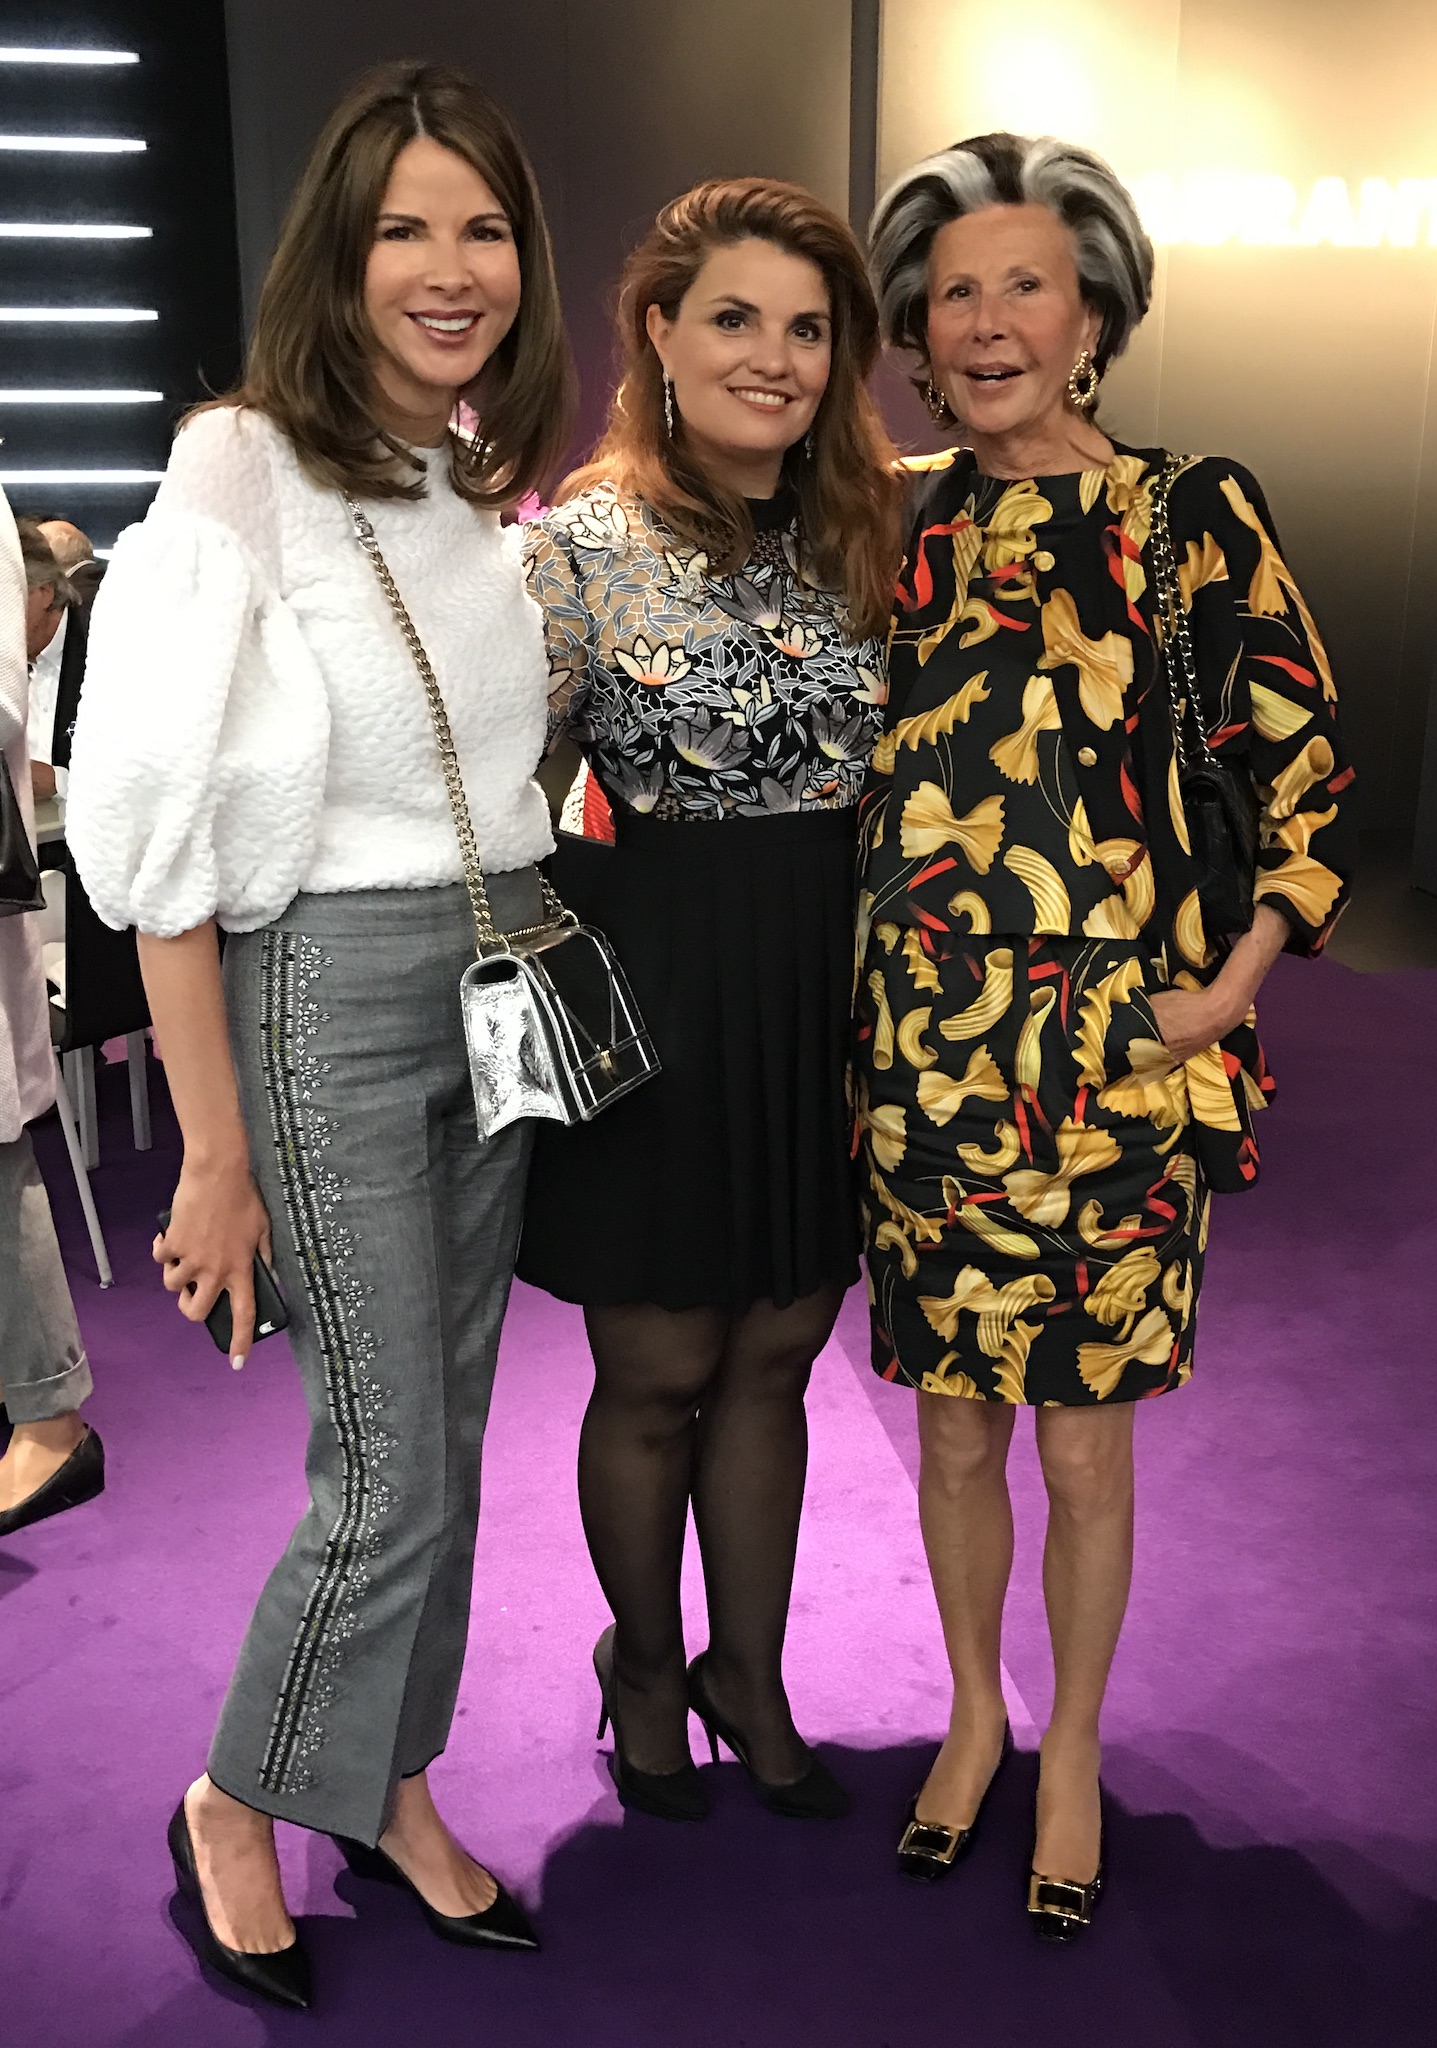 Eva Loesche, Corina Krwinkel, Christina Sieger, Ladies Lunch Art Cologne, Fashion-Blog, Lieblingsstil.com